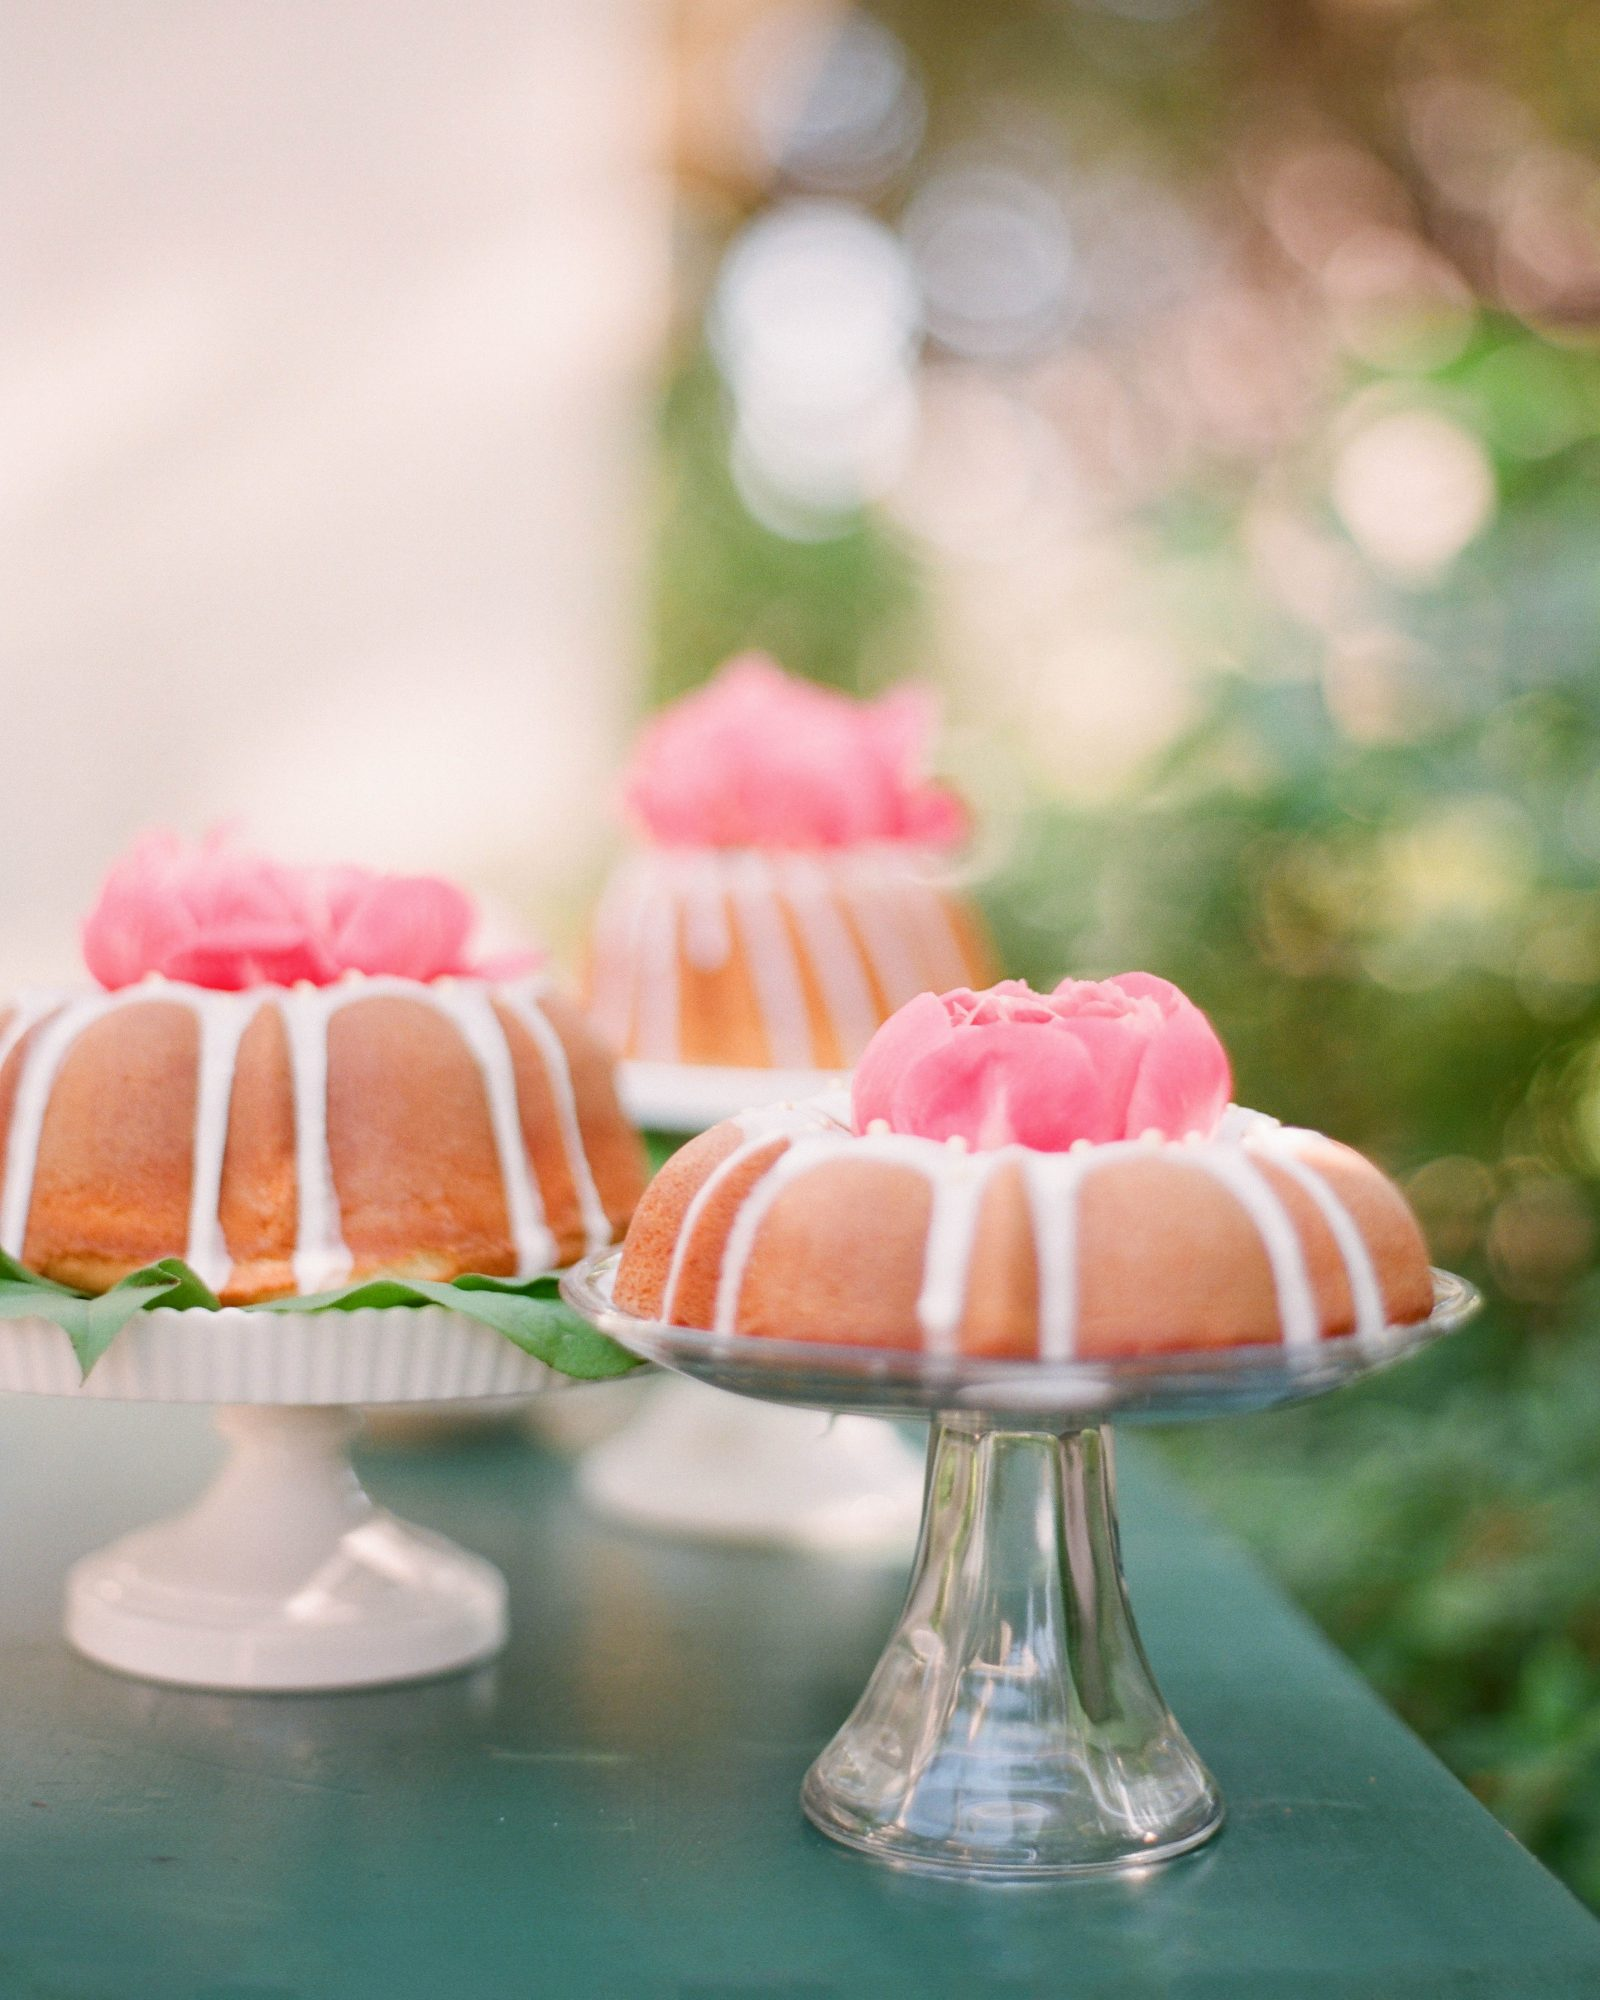 Consider choosing a type of cake that's typically undressed, like these Matchbox Kitchen Bundt cakes.